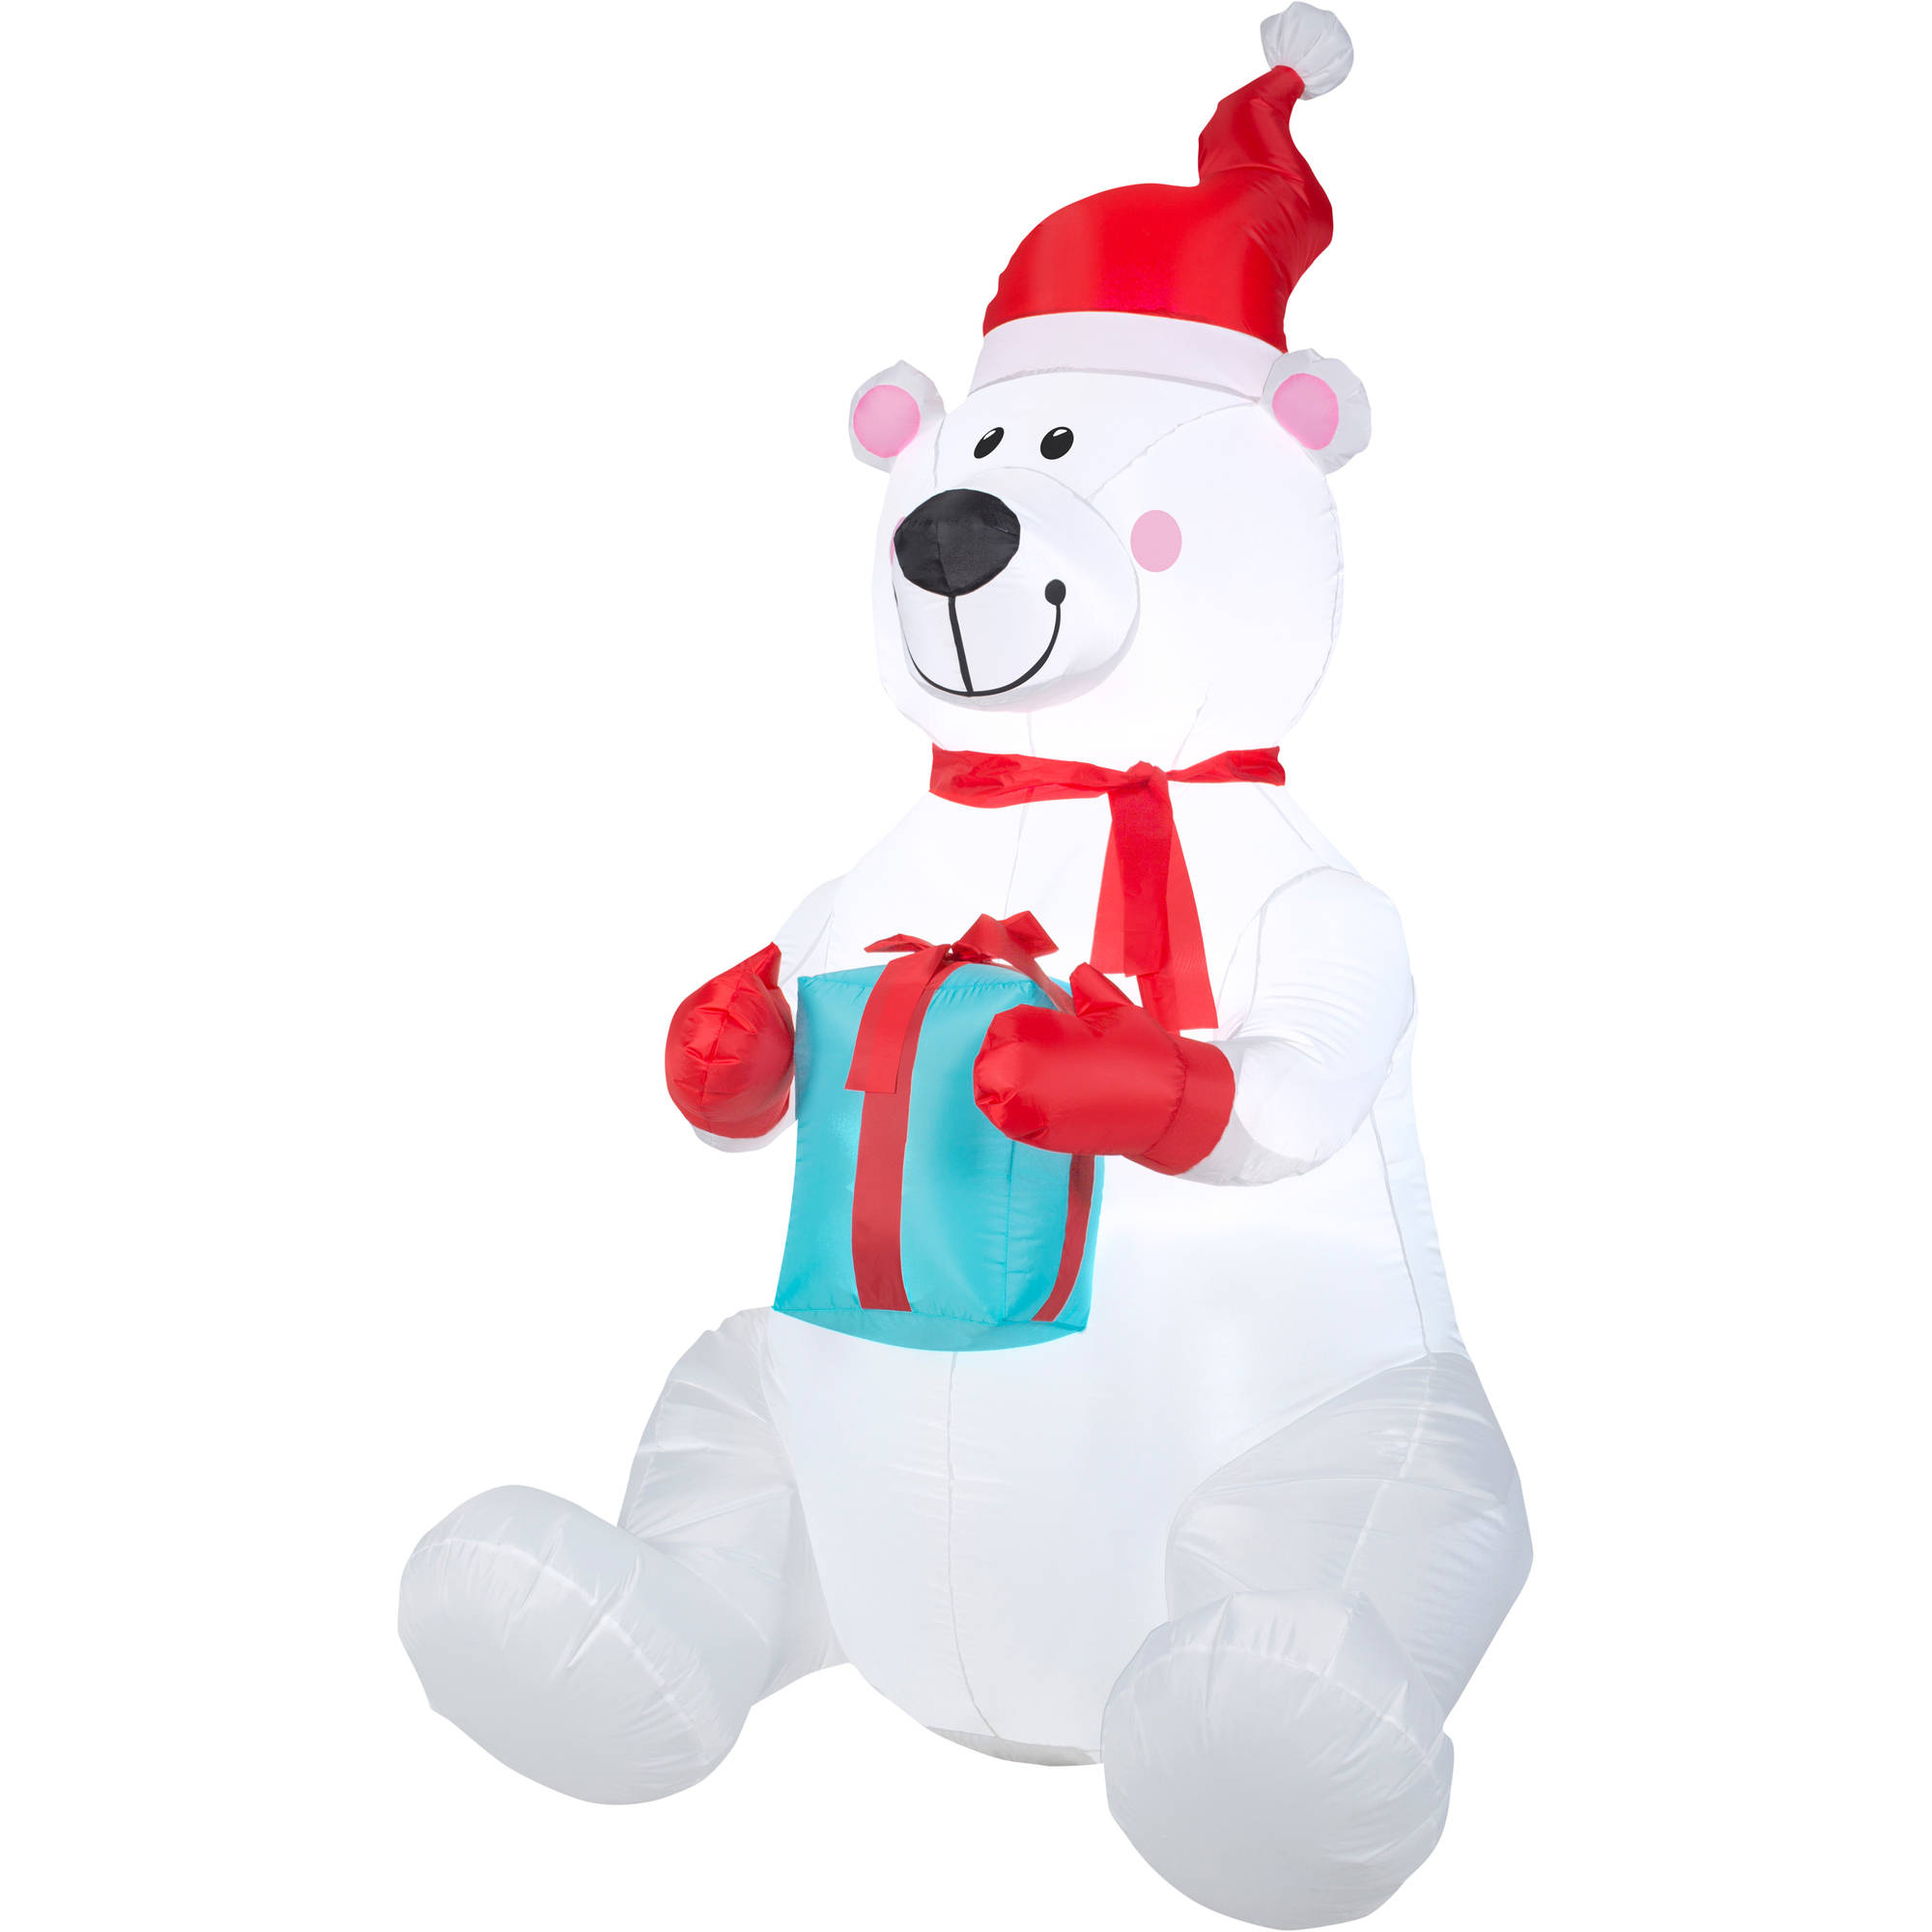 gemmy airblown christmas inflatables 6 polar bear walmartcom - Christmas Inflatables At Walmart